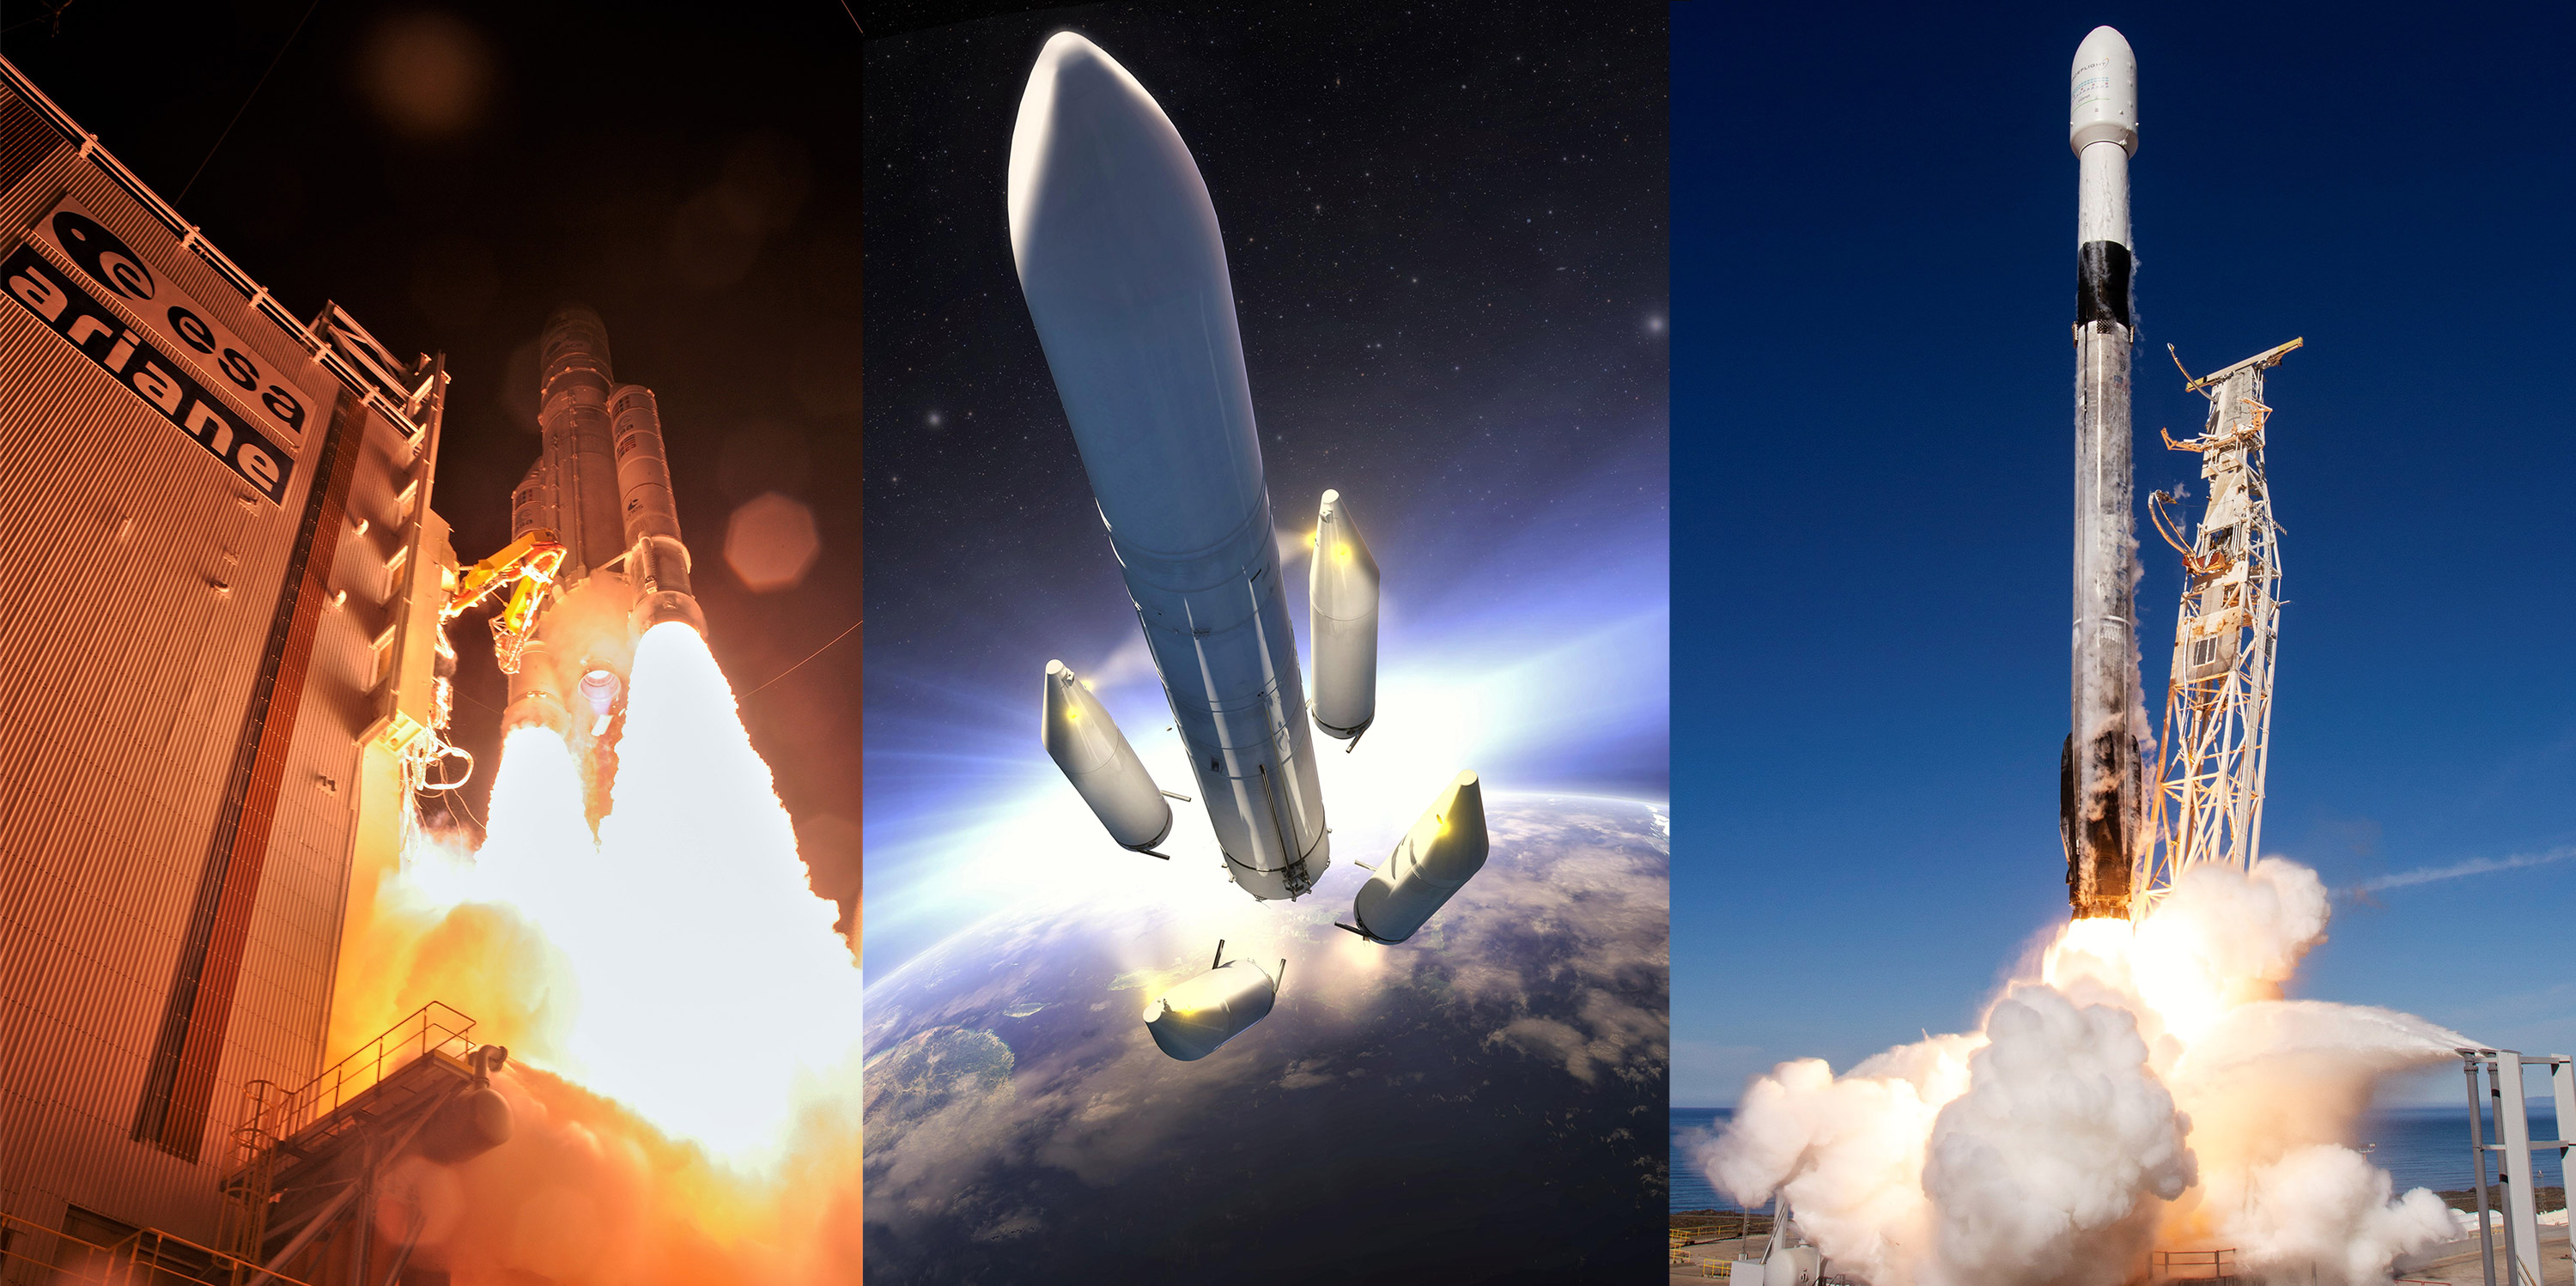 Spacex Competitor Arianespace Criticized For Lackluster